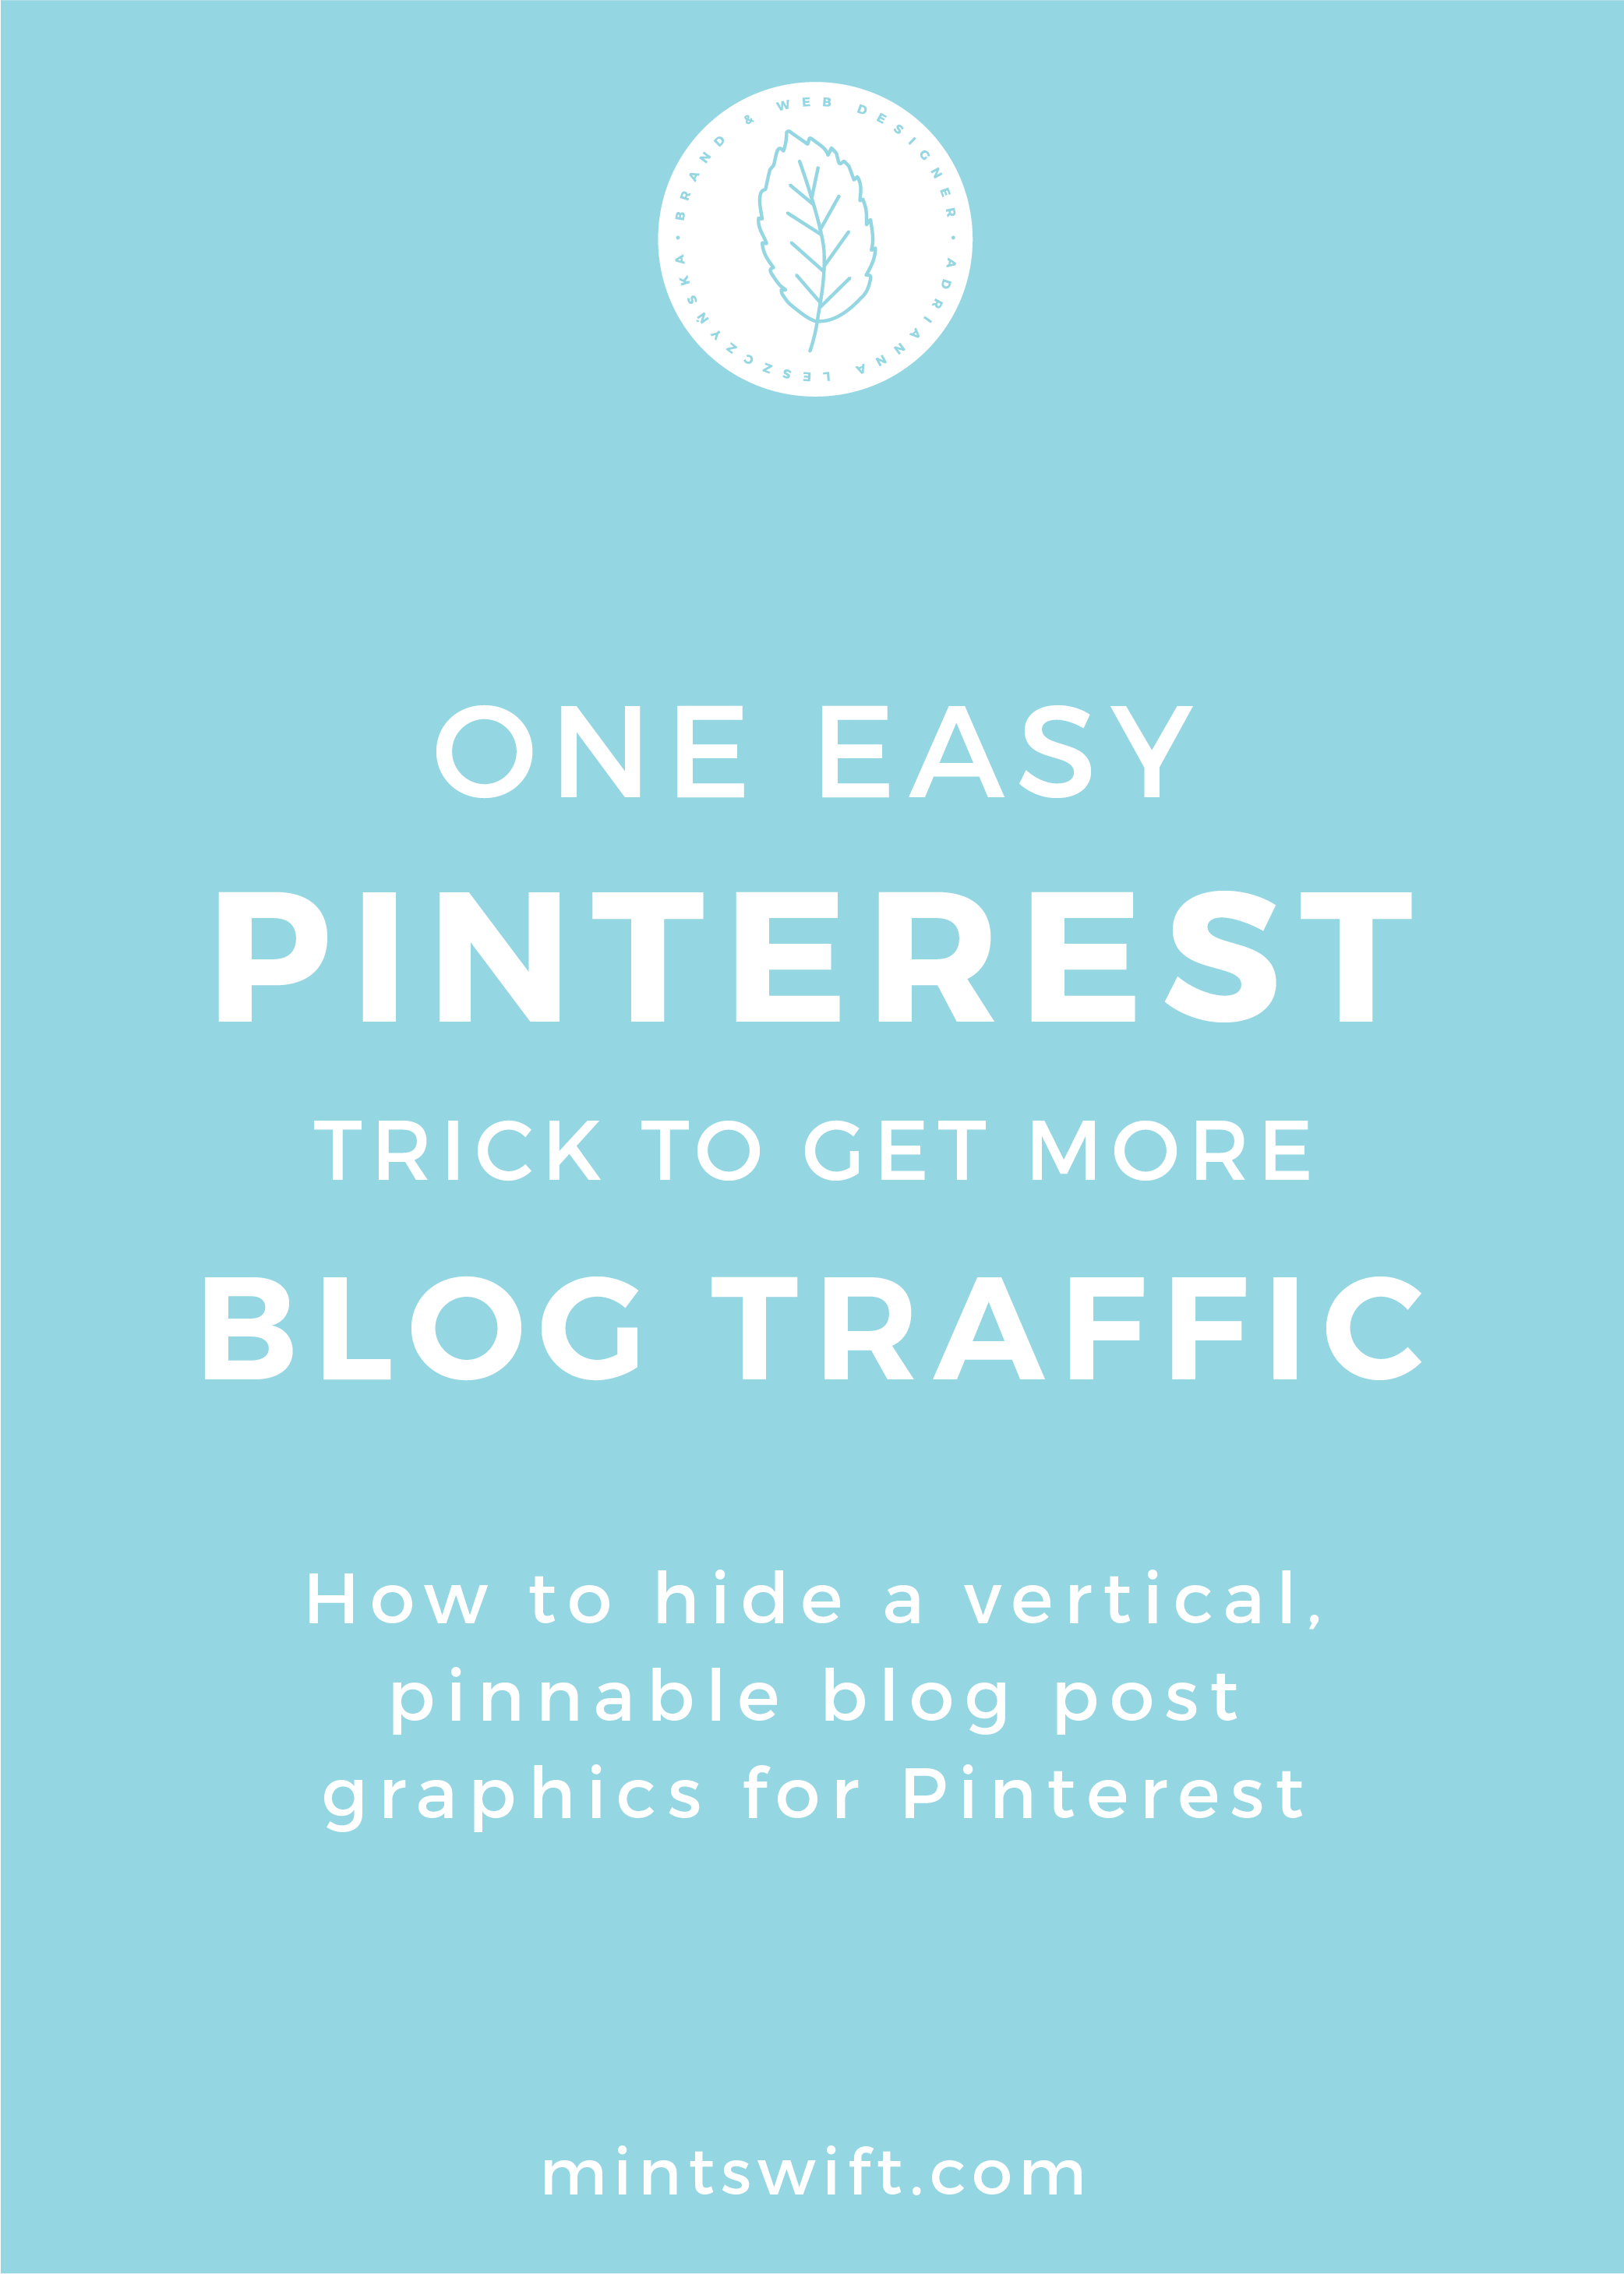 One Easy Pinterest Trick to Get More Blog Traffic. How to Hide a Vertical, Pinnable Blog Post Graphics for Pinterest - MintSwift